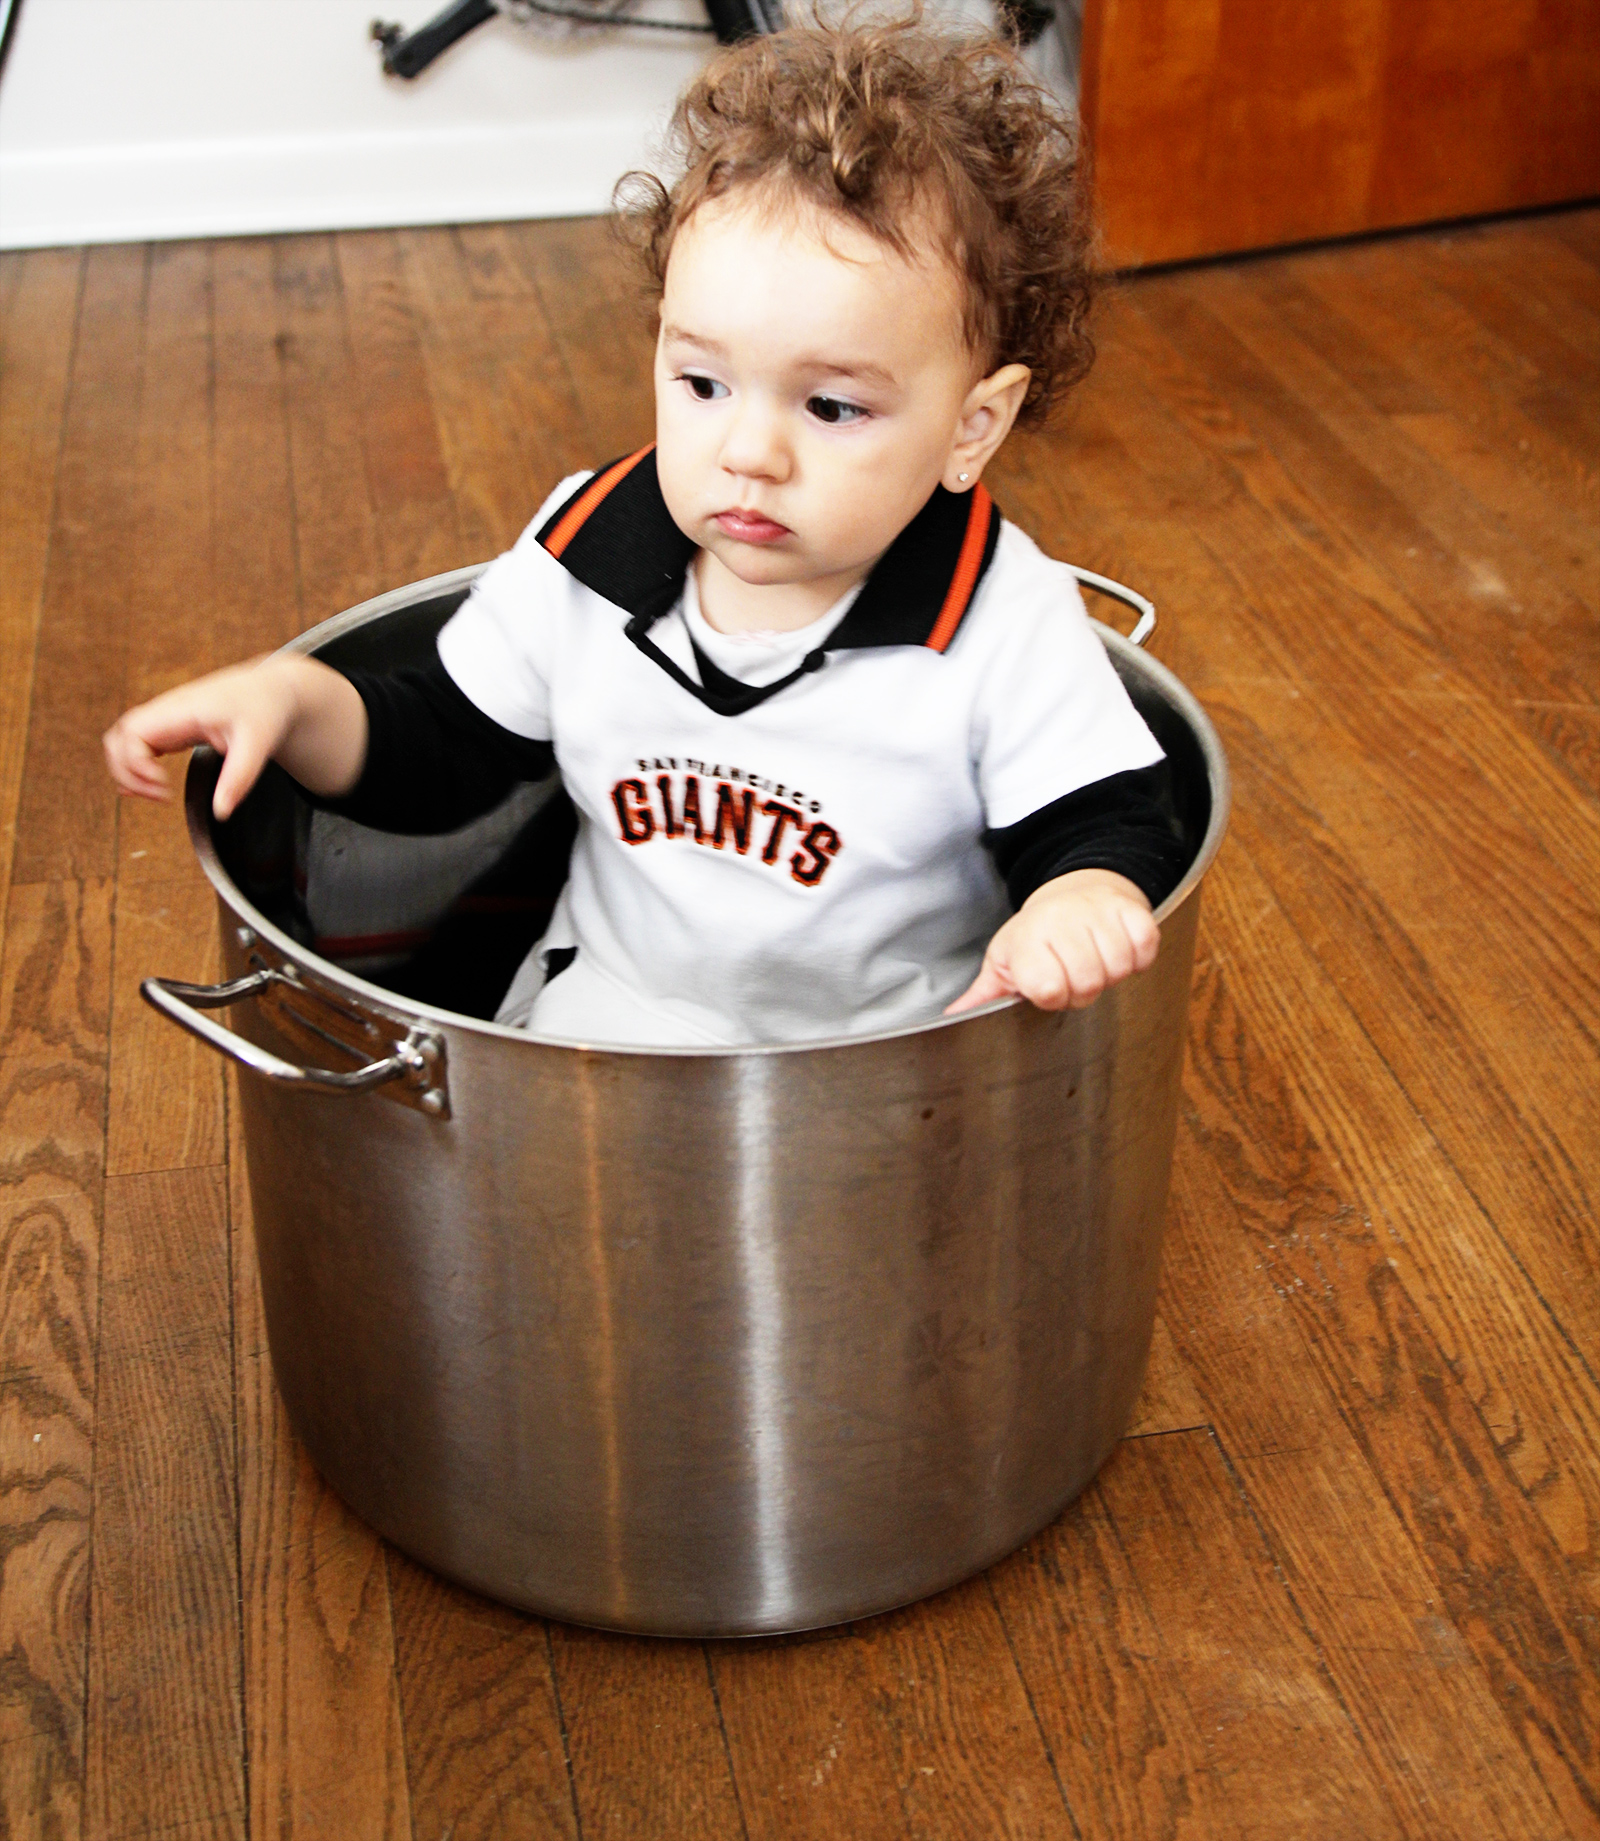 My sister, brother-in-law, and niece came for a visit in February. A big Giants fan!